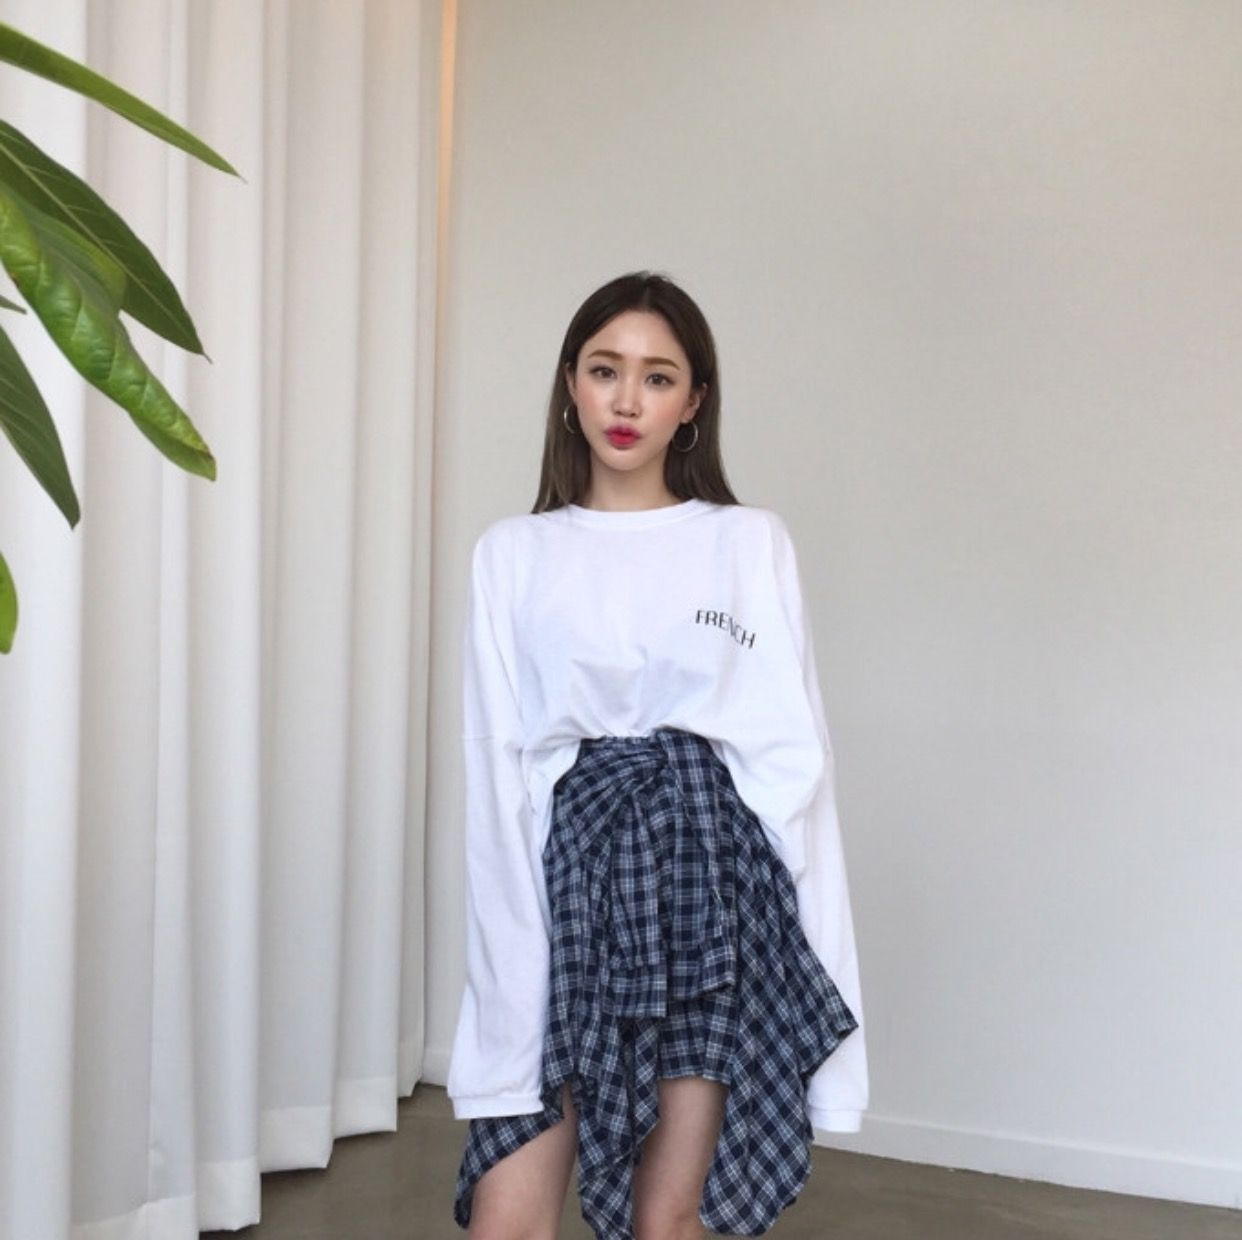 Flannel outfits for women  white sweater u flannel skirt    o u t f i t s   Pinterest